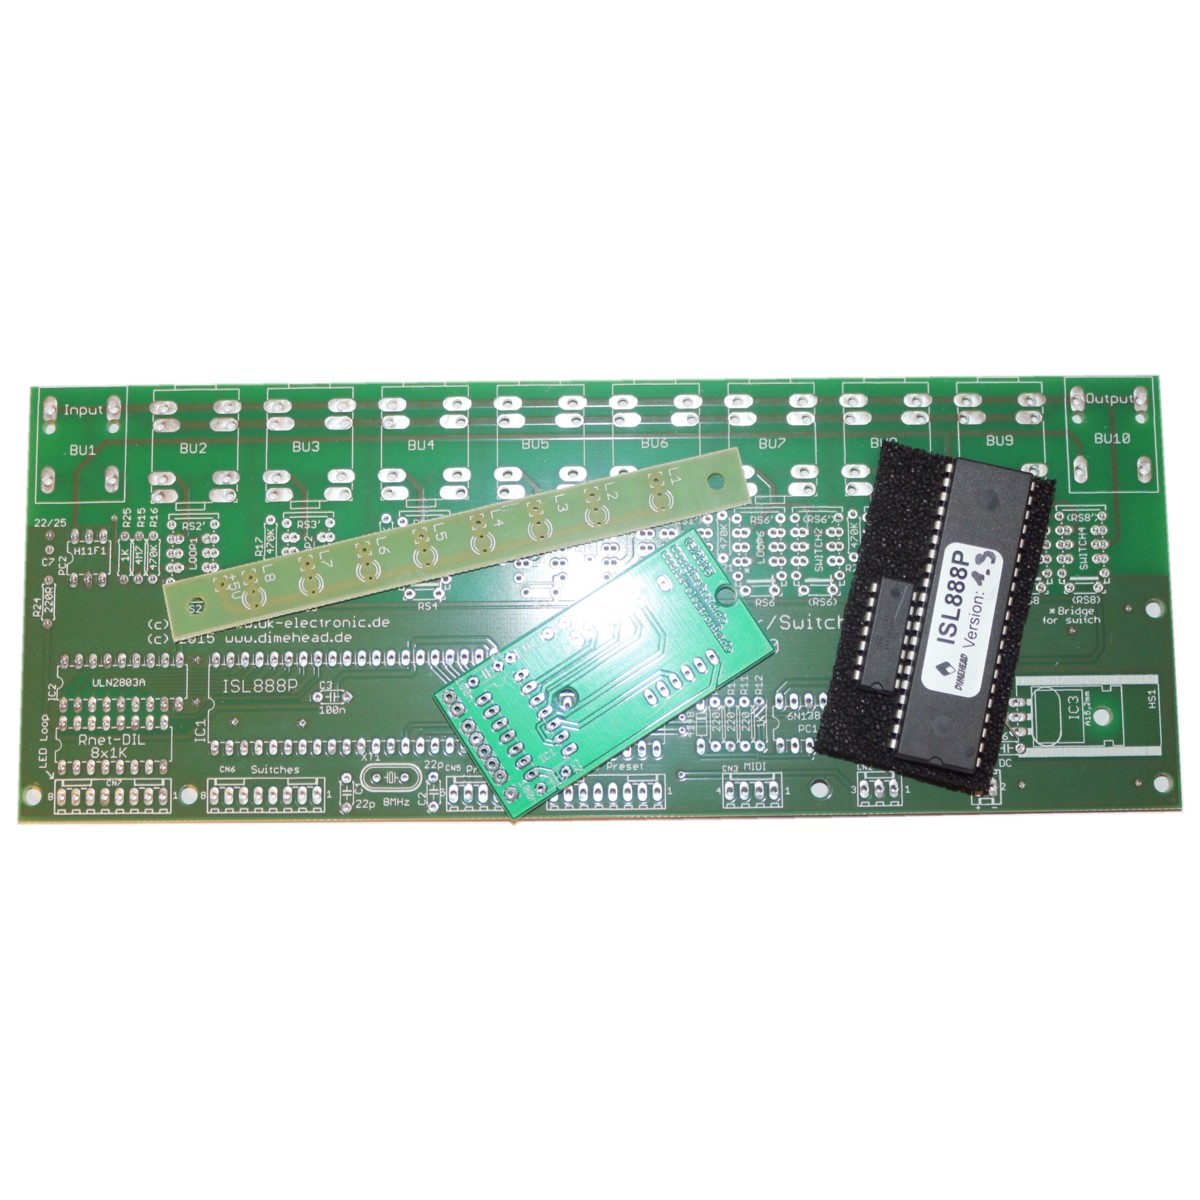 Pcb kit 8-way looper ISL888p with controllers